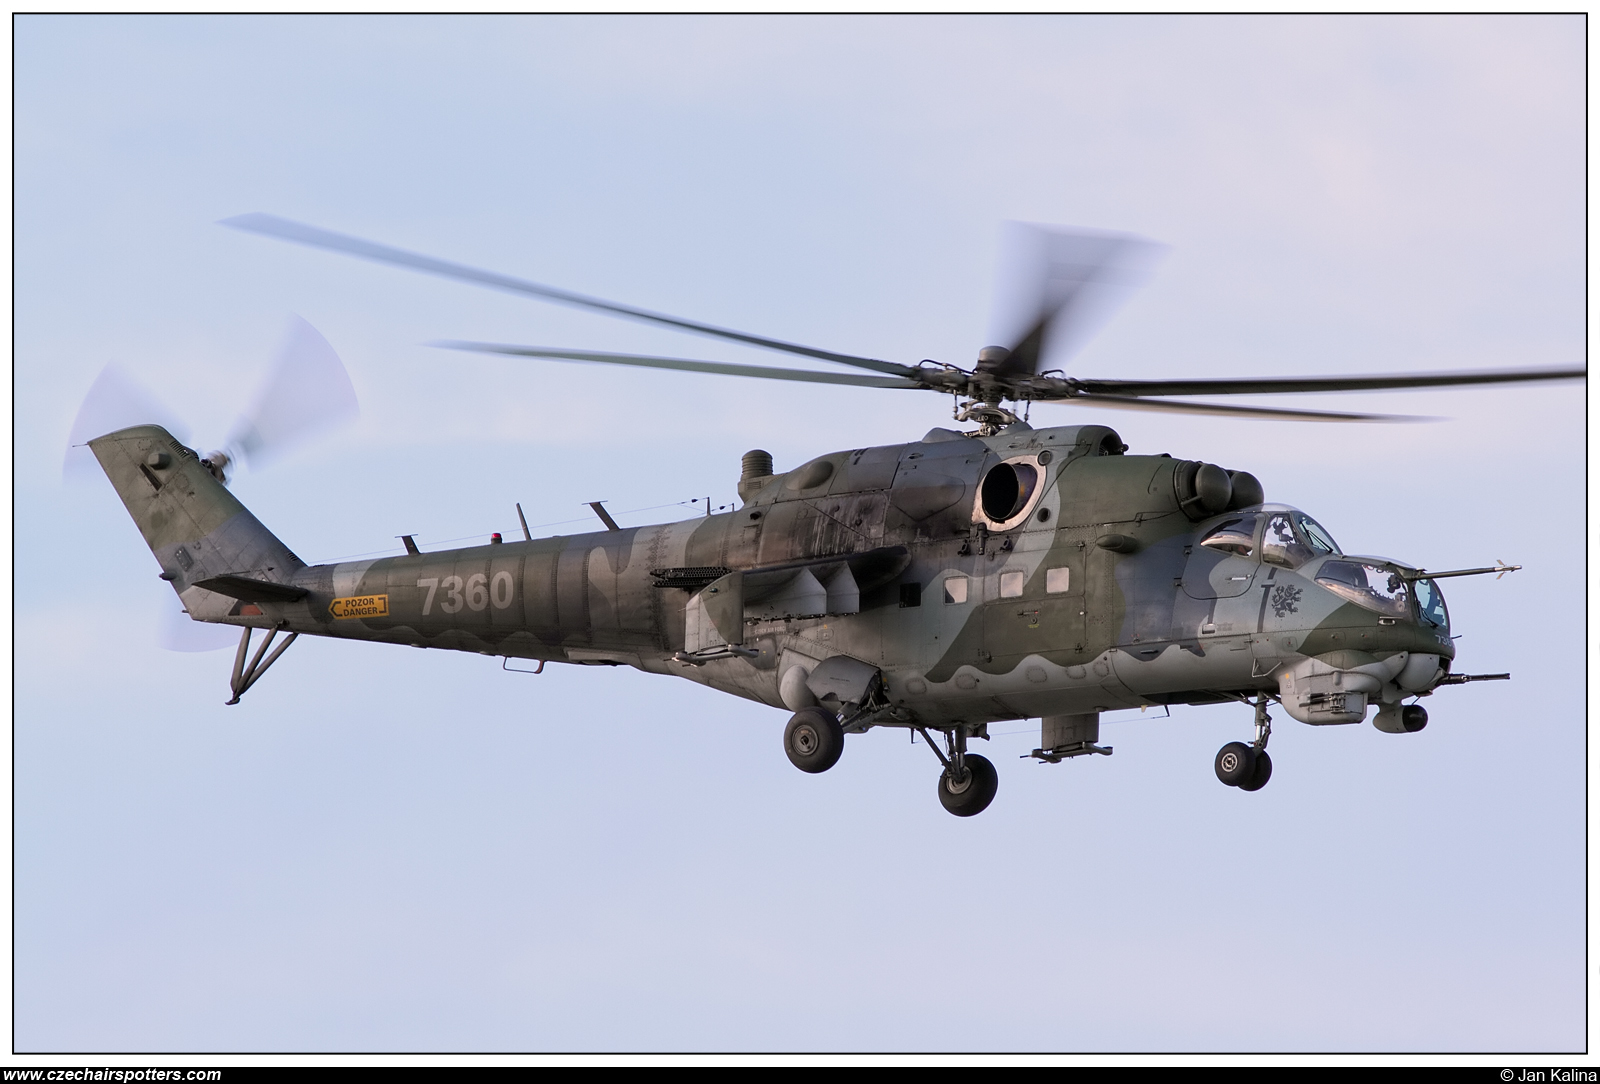 Czech - Air Force – Mil Mi-24V Hind 7360